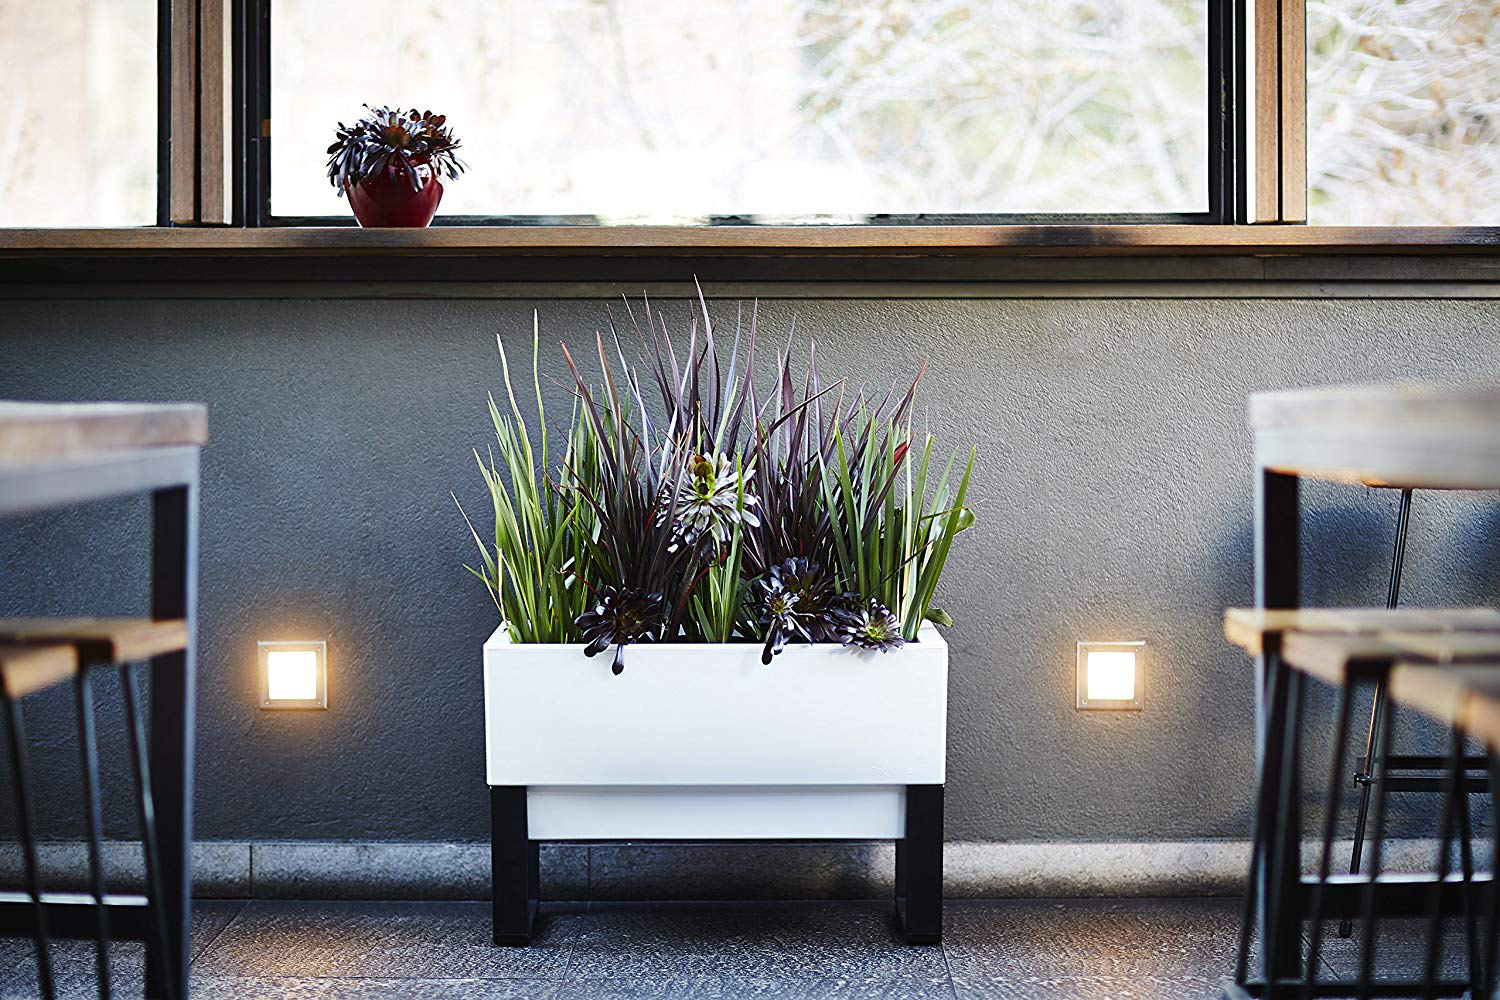 Self Watering Outdoor Planters Glowpear Urban Garden Self Watering Planter